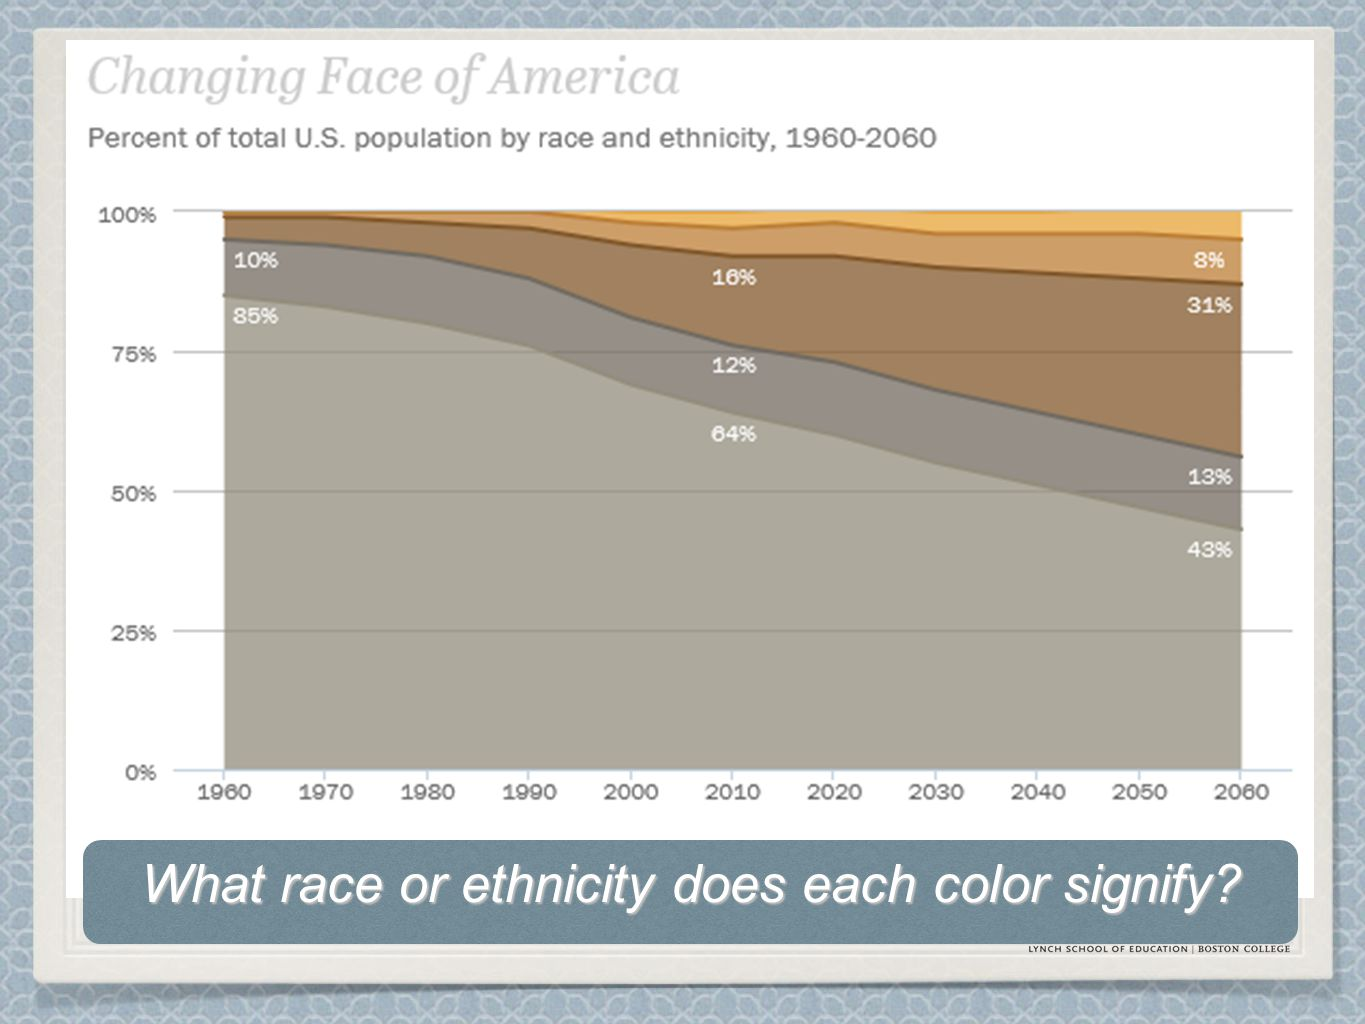 What race or ethnicity does each color signify